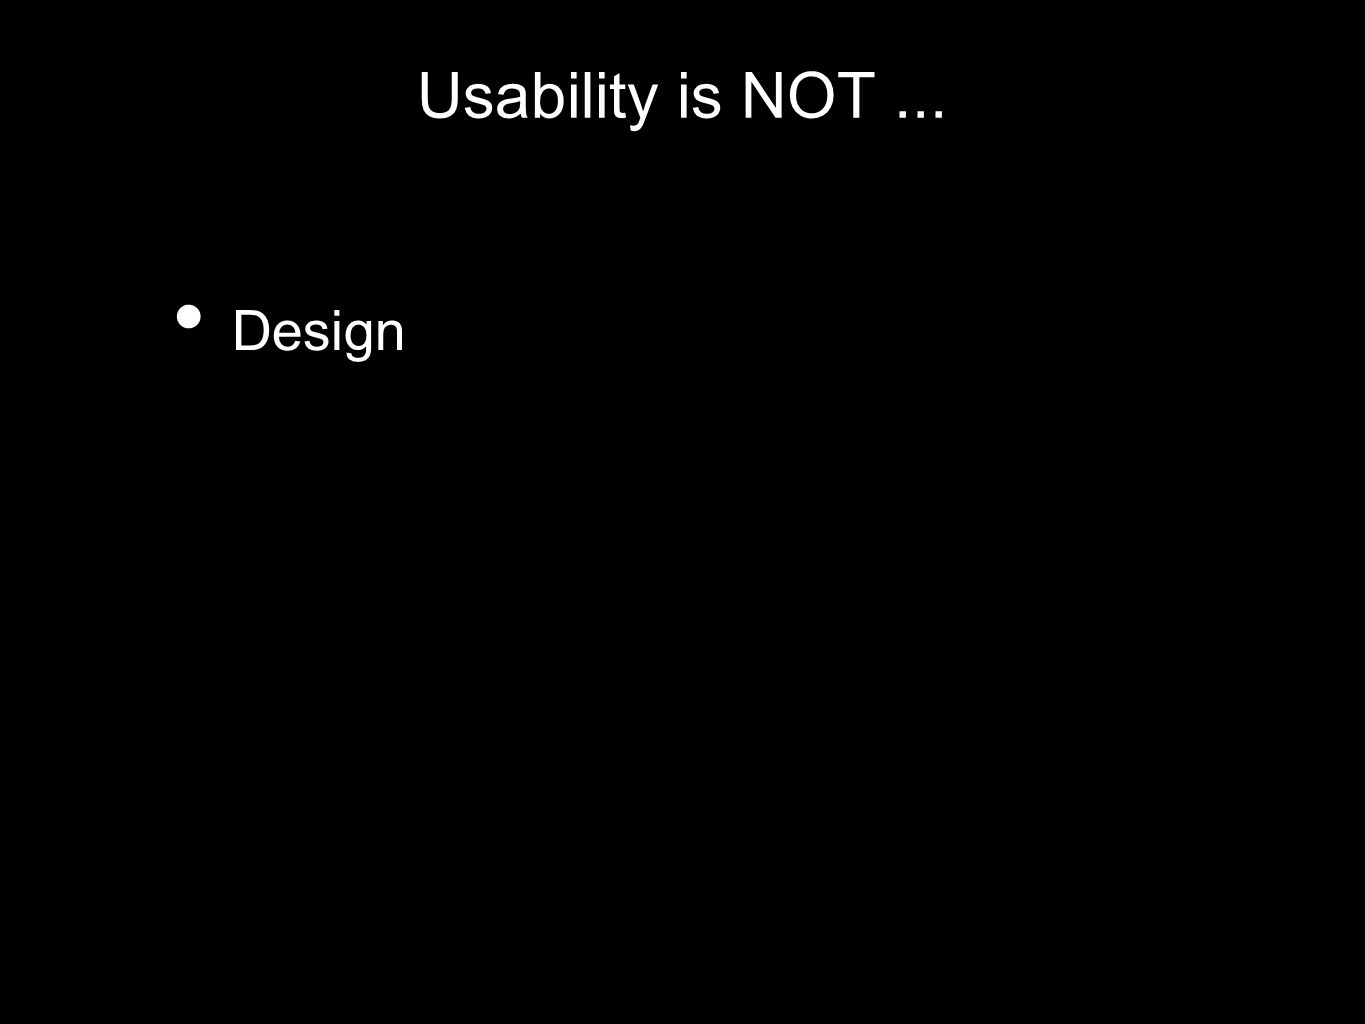 Usability is NOT... Design